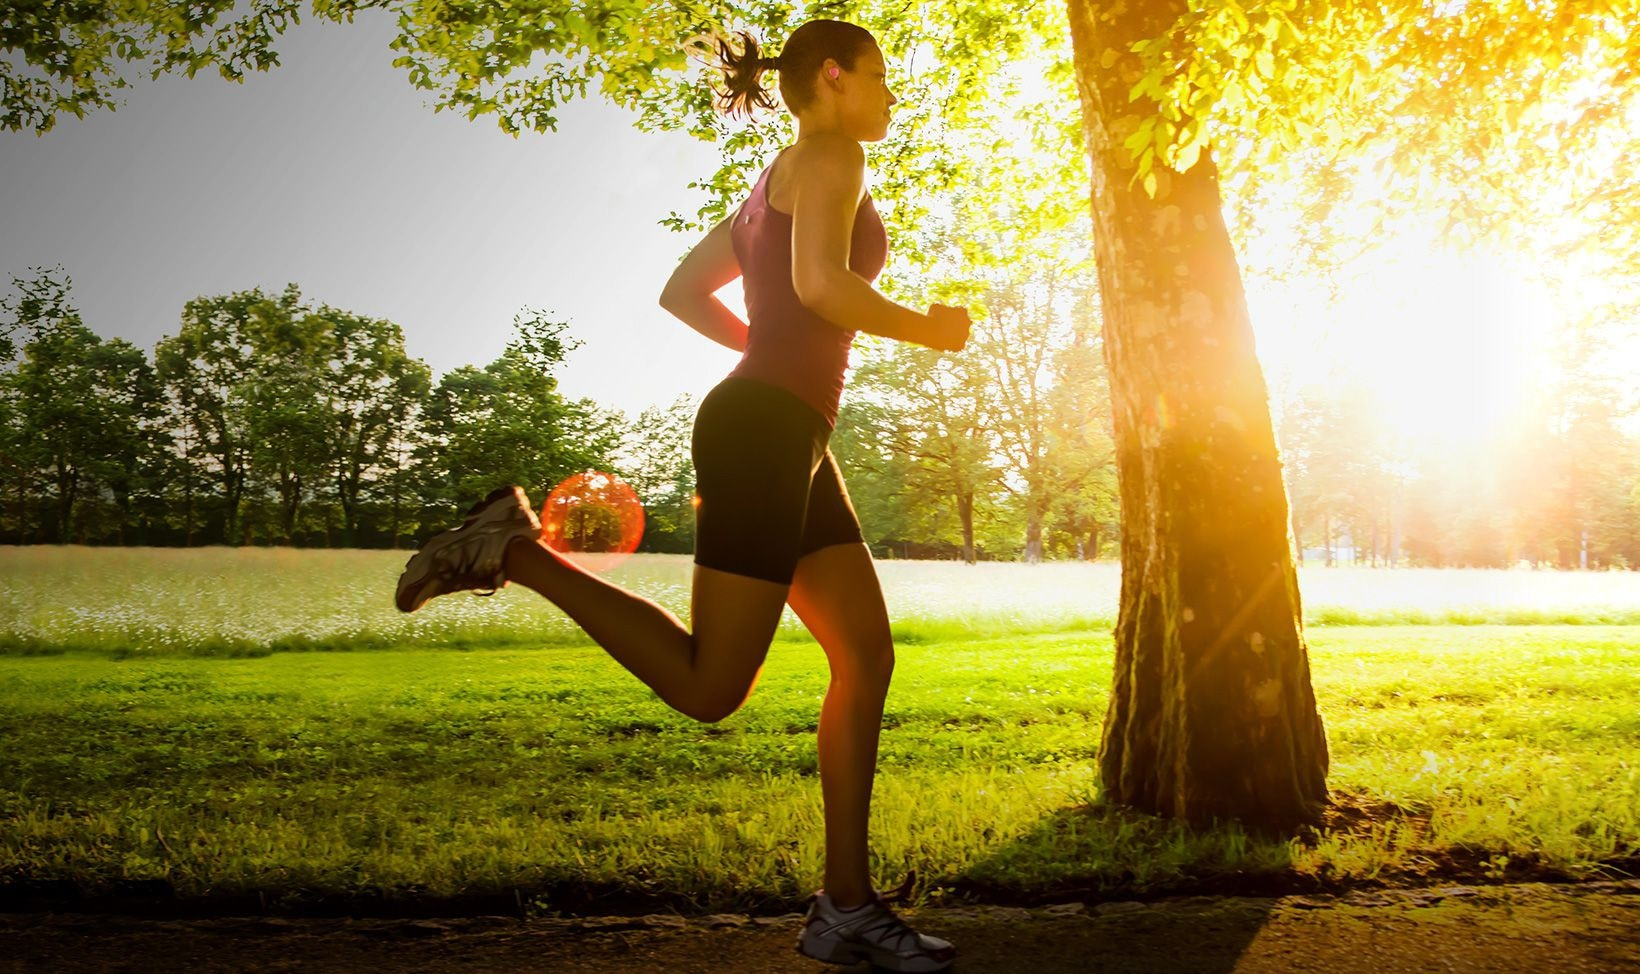 Background image of woman running in a park wearing Gear IconX